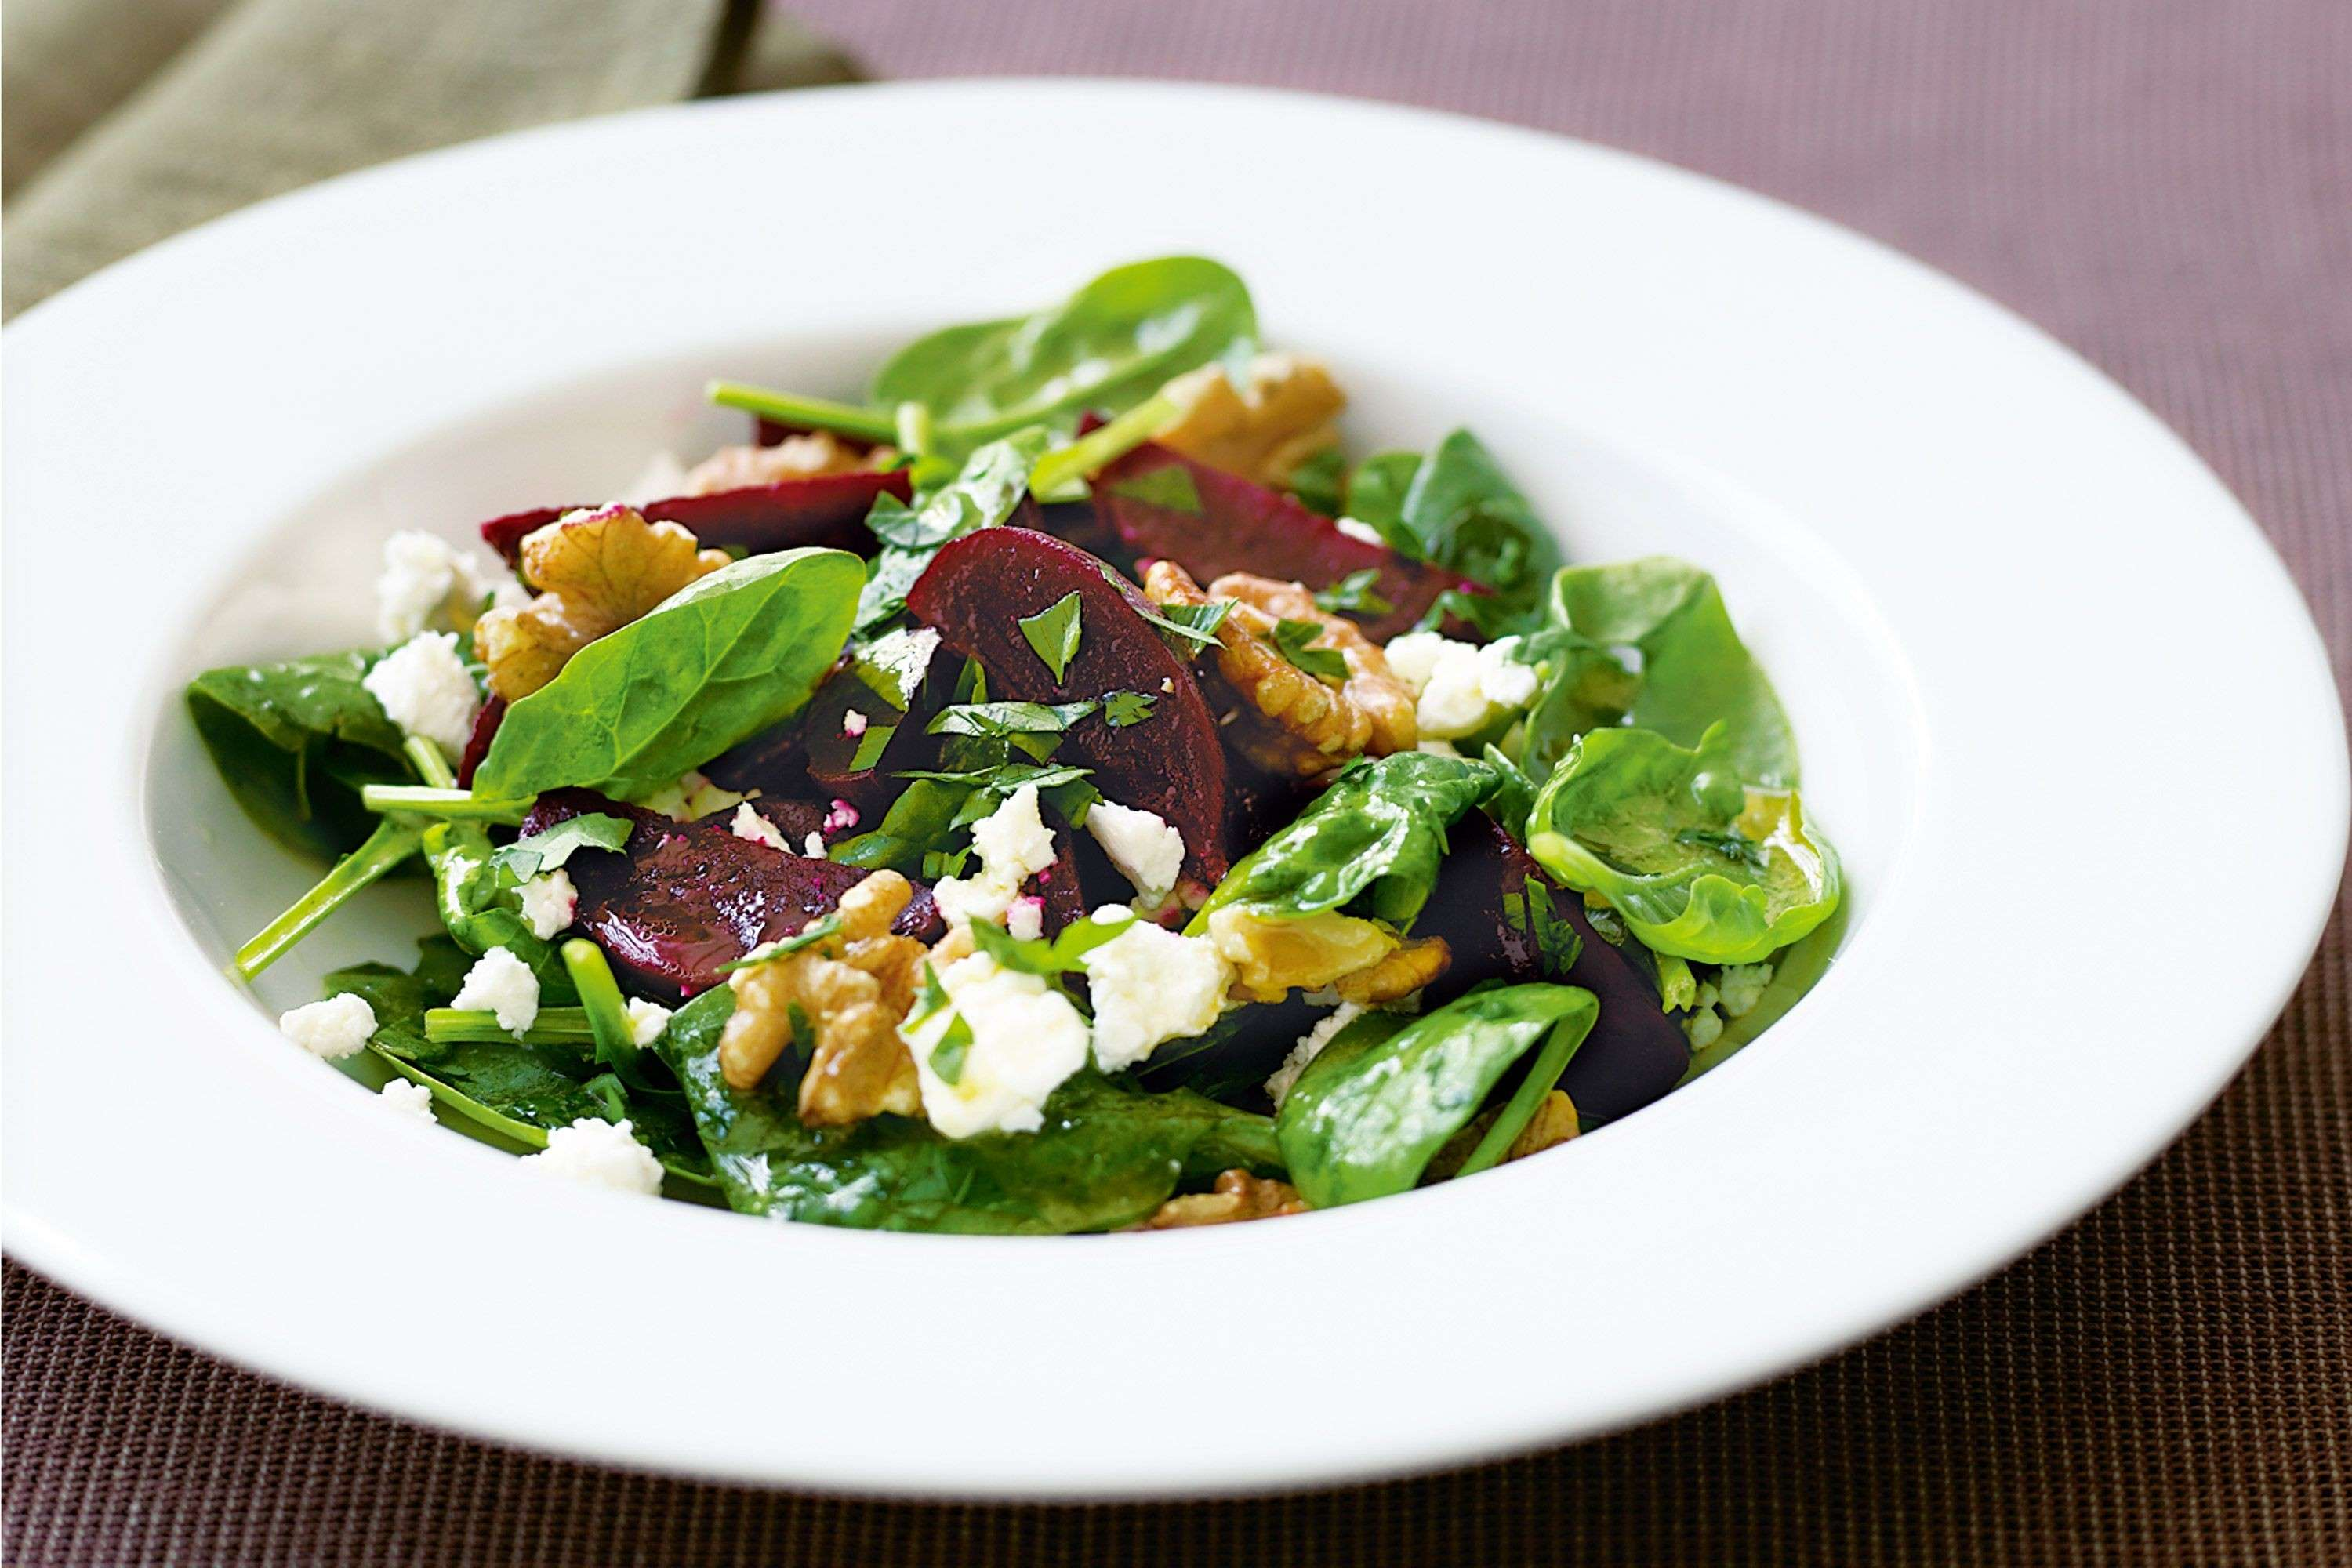 beetroot-baby-spinach-and-goats-cheese-salad-37177-1.